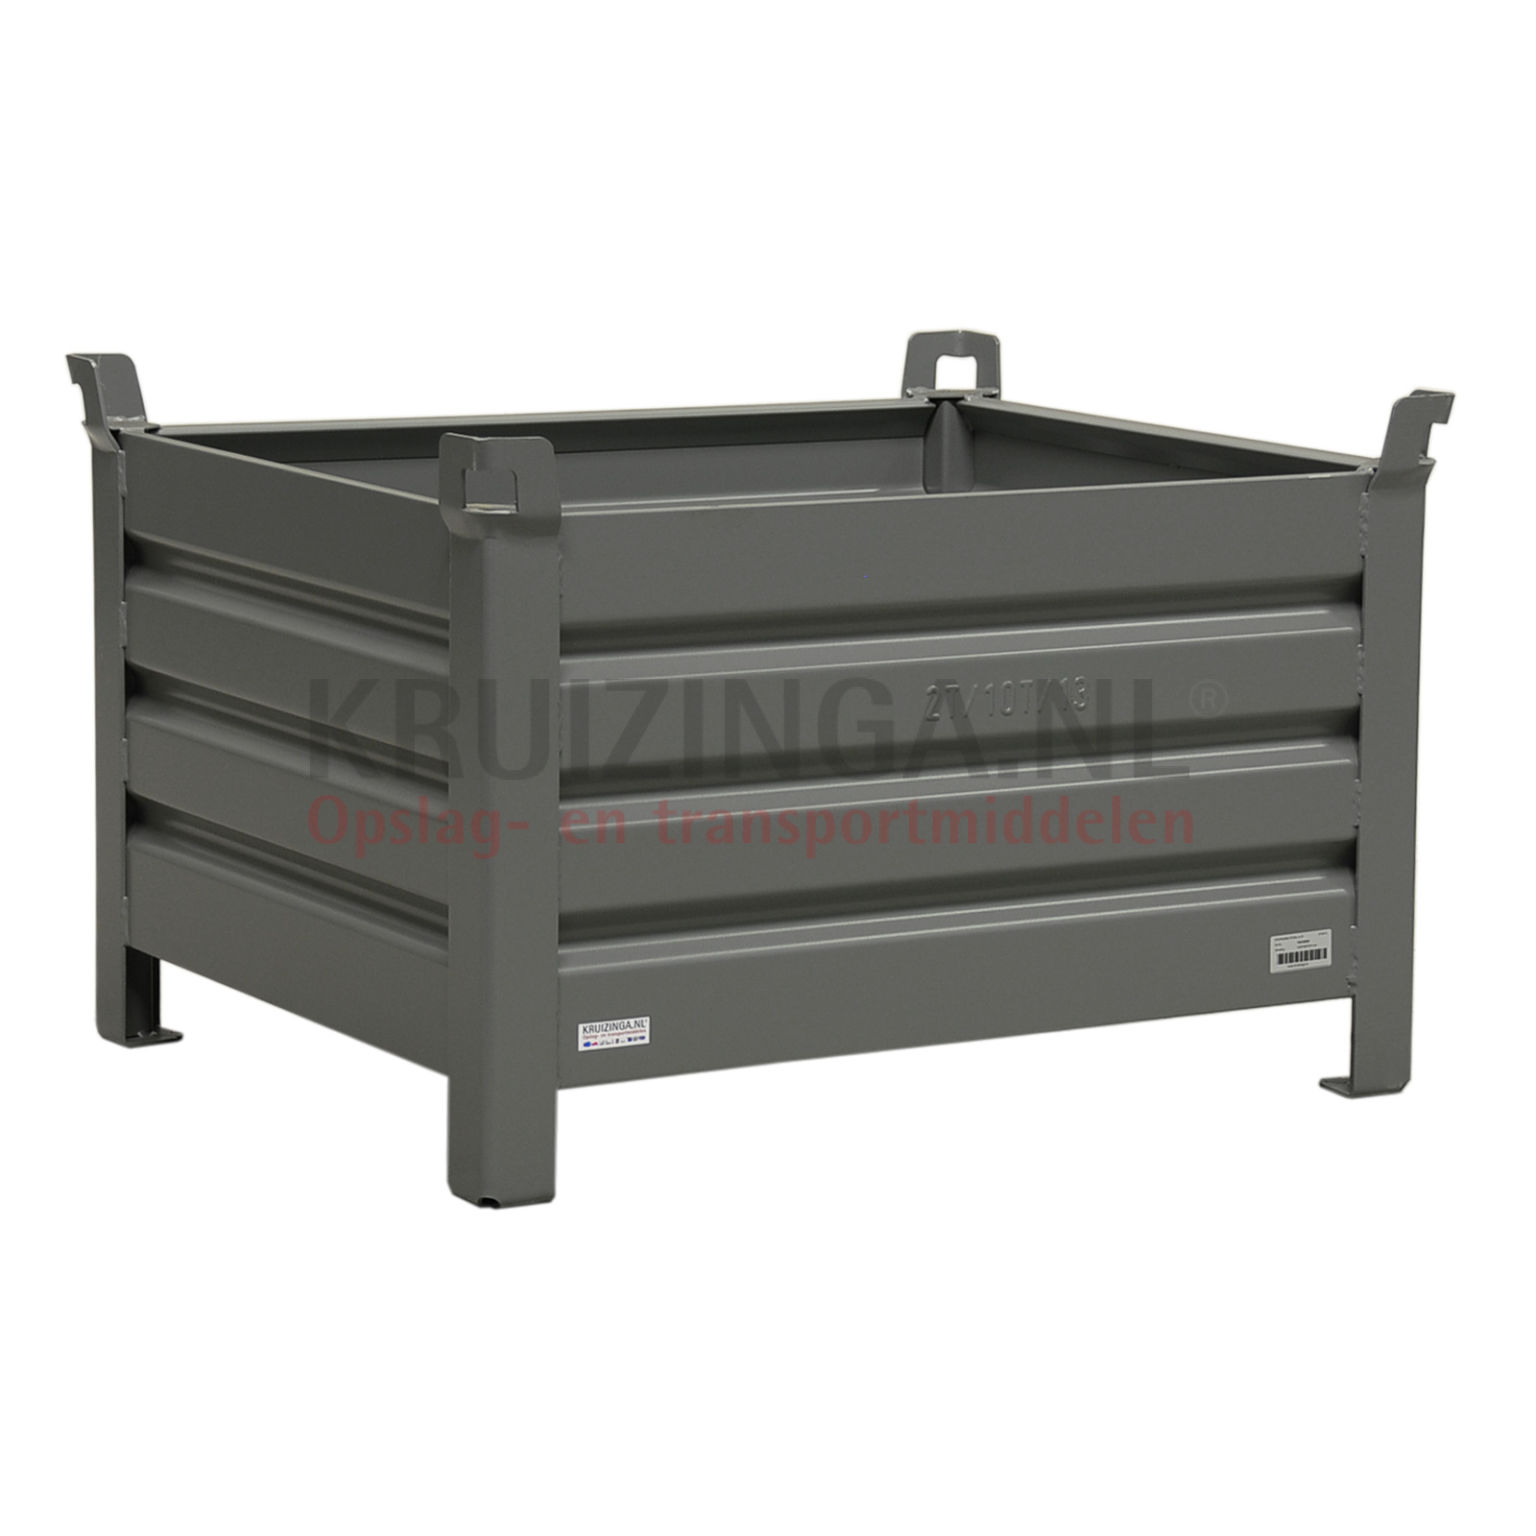 Muebles Rafael Bandera Vivar Juegos De Roc New Stacking Box Steel Fixed Construction Stacking Box 4 Sides 1021086s